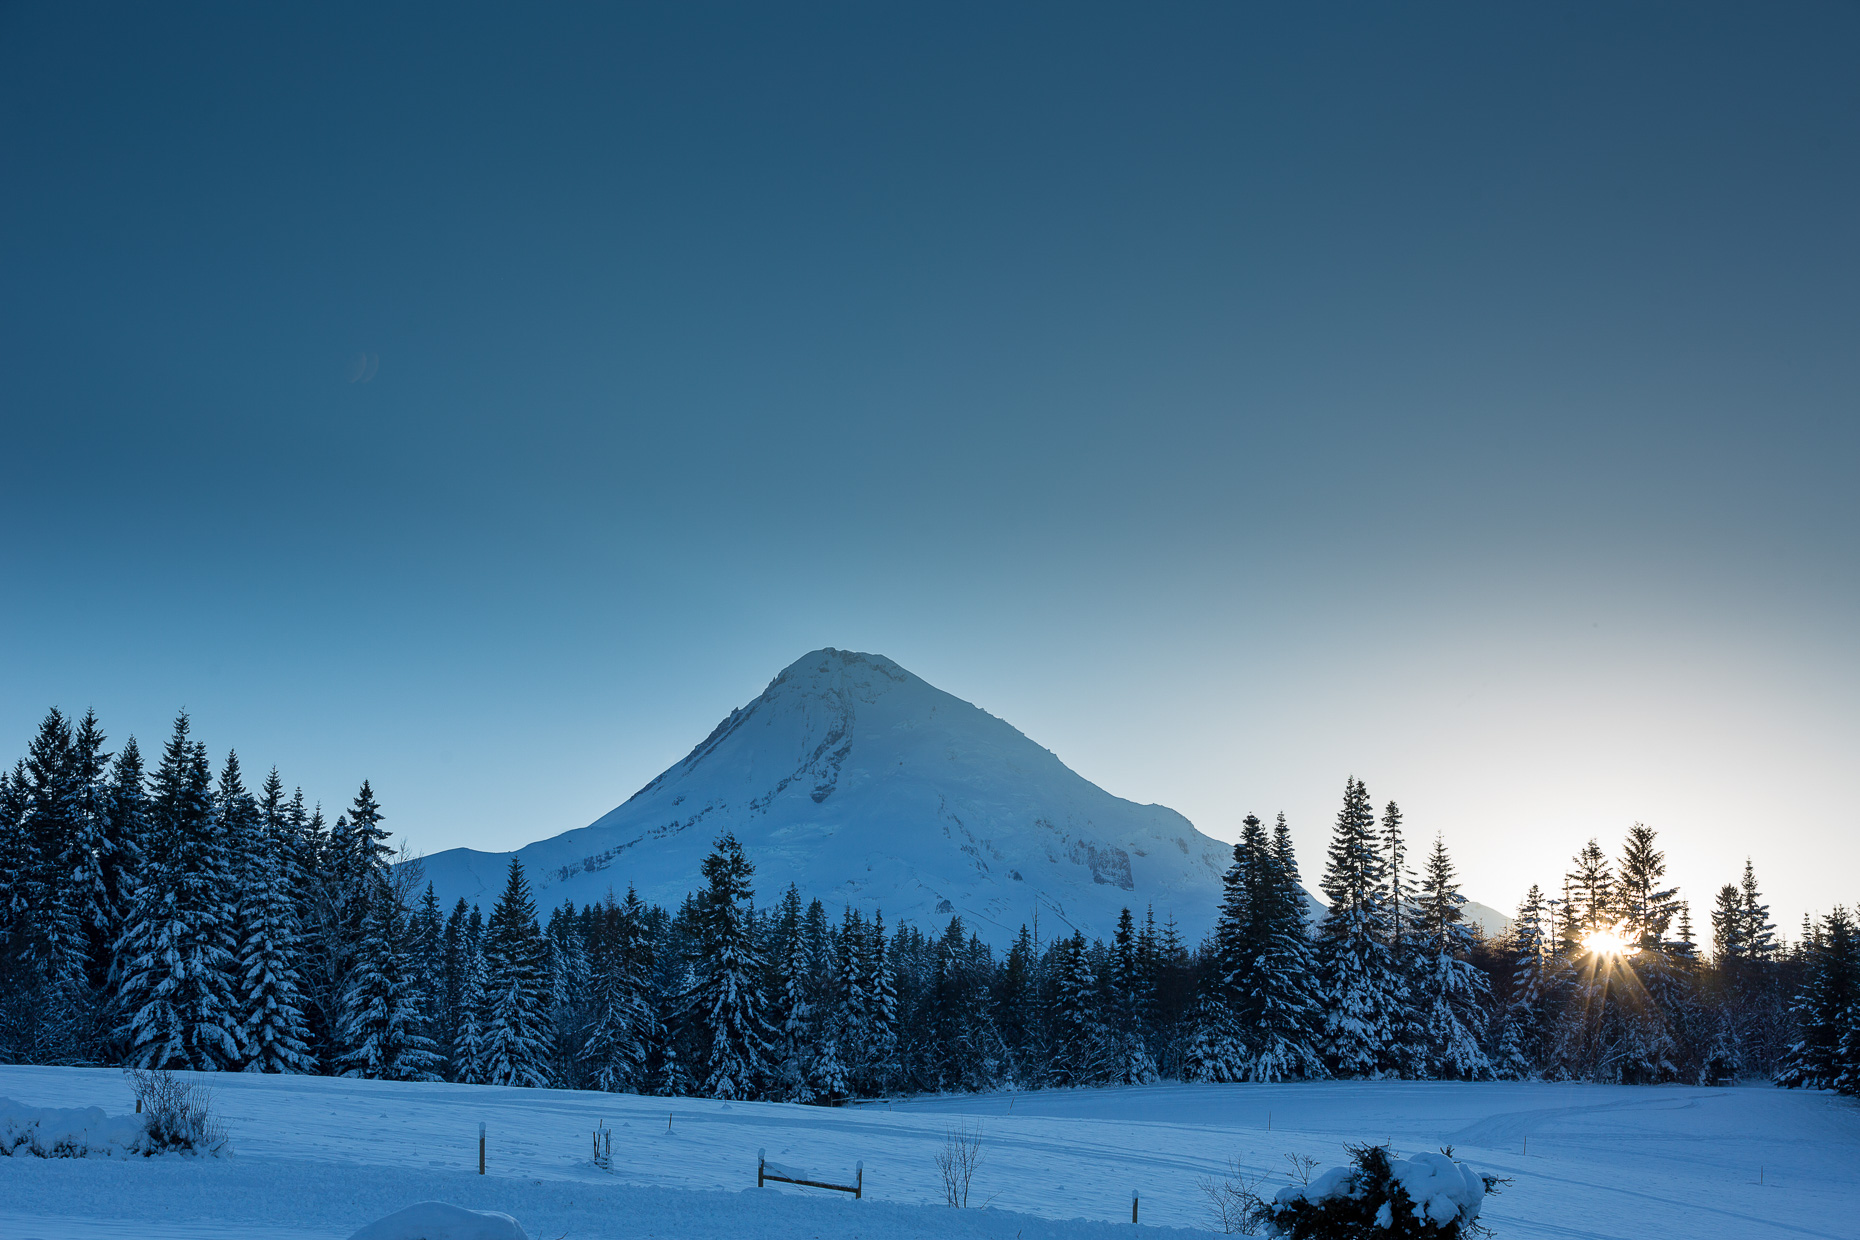 mt-hood-bed-breakfast-elopement-snow-67